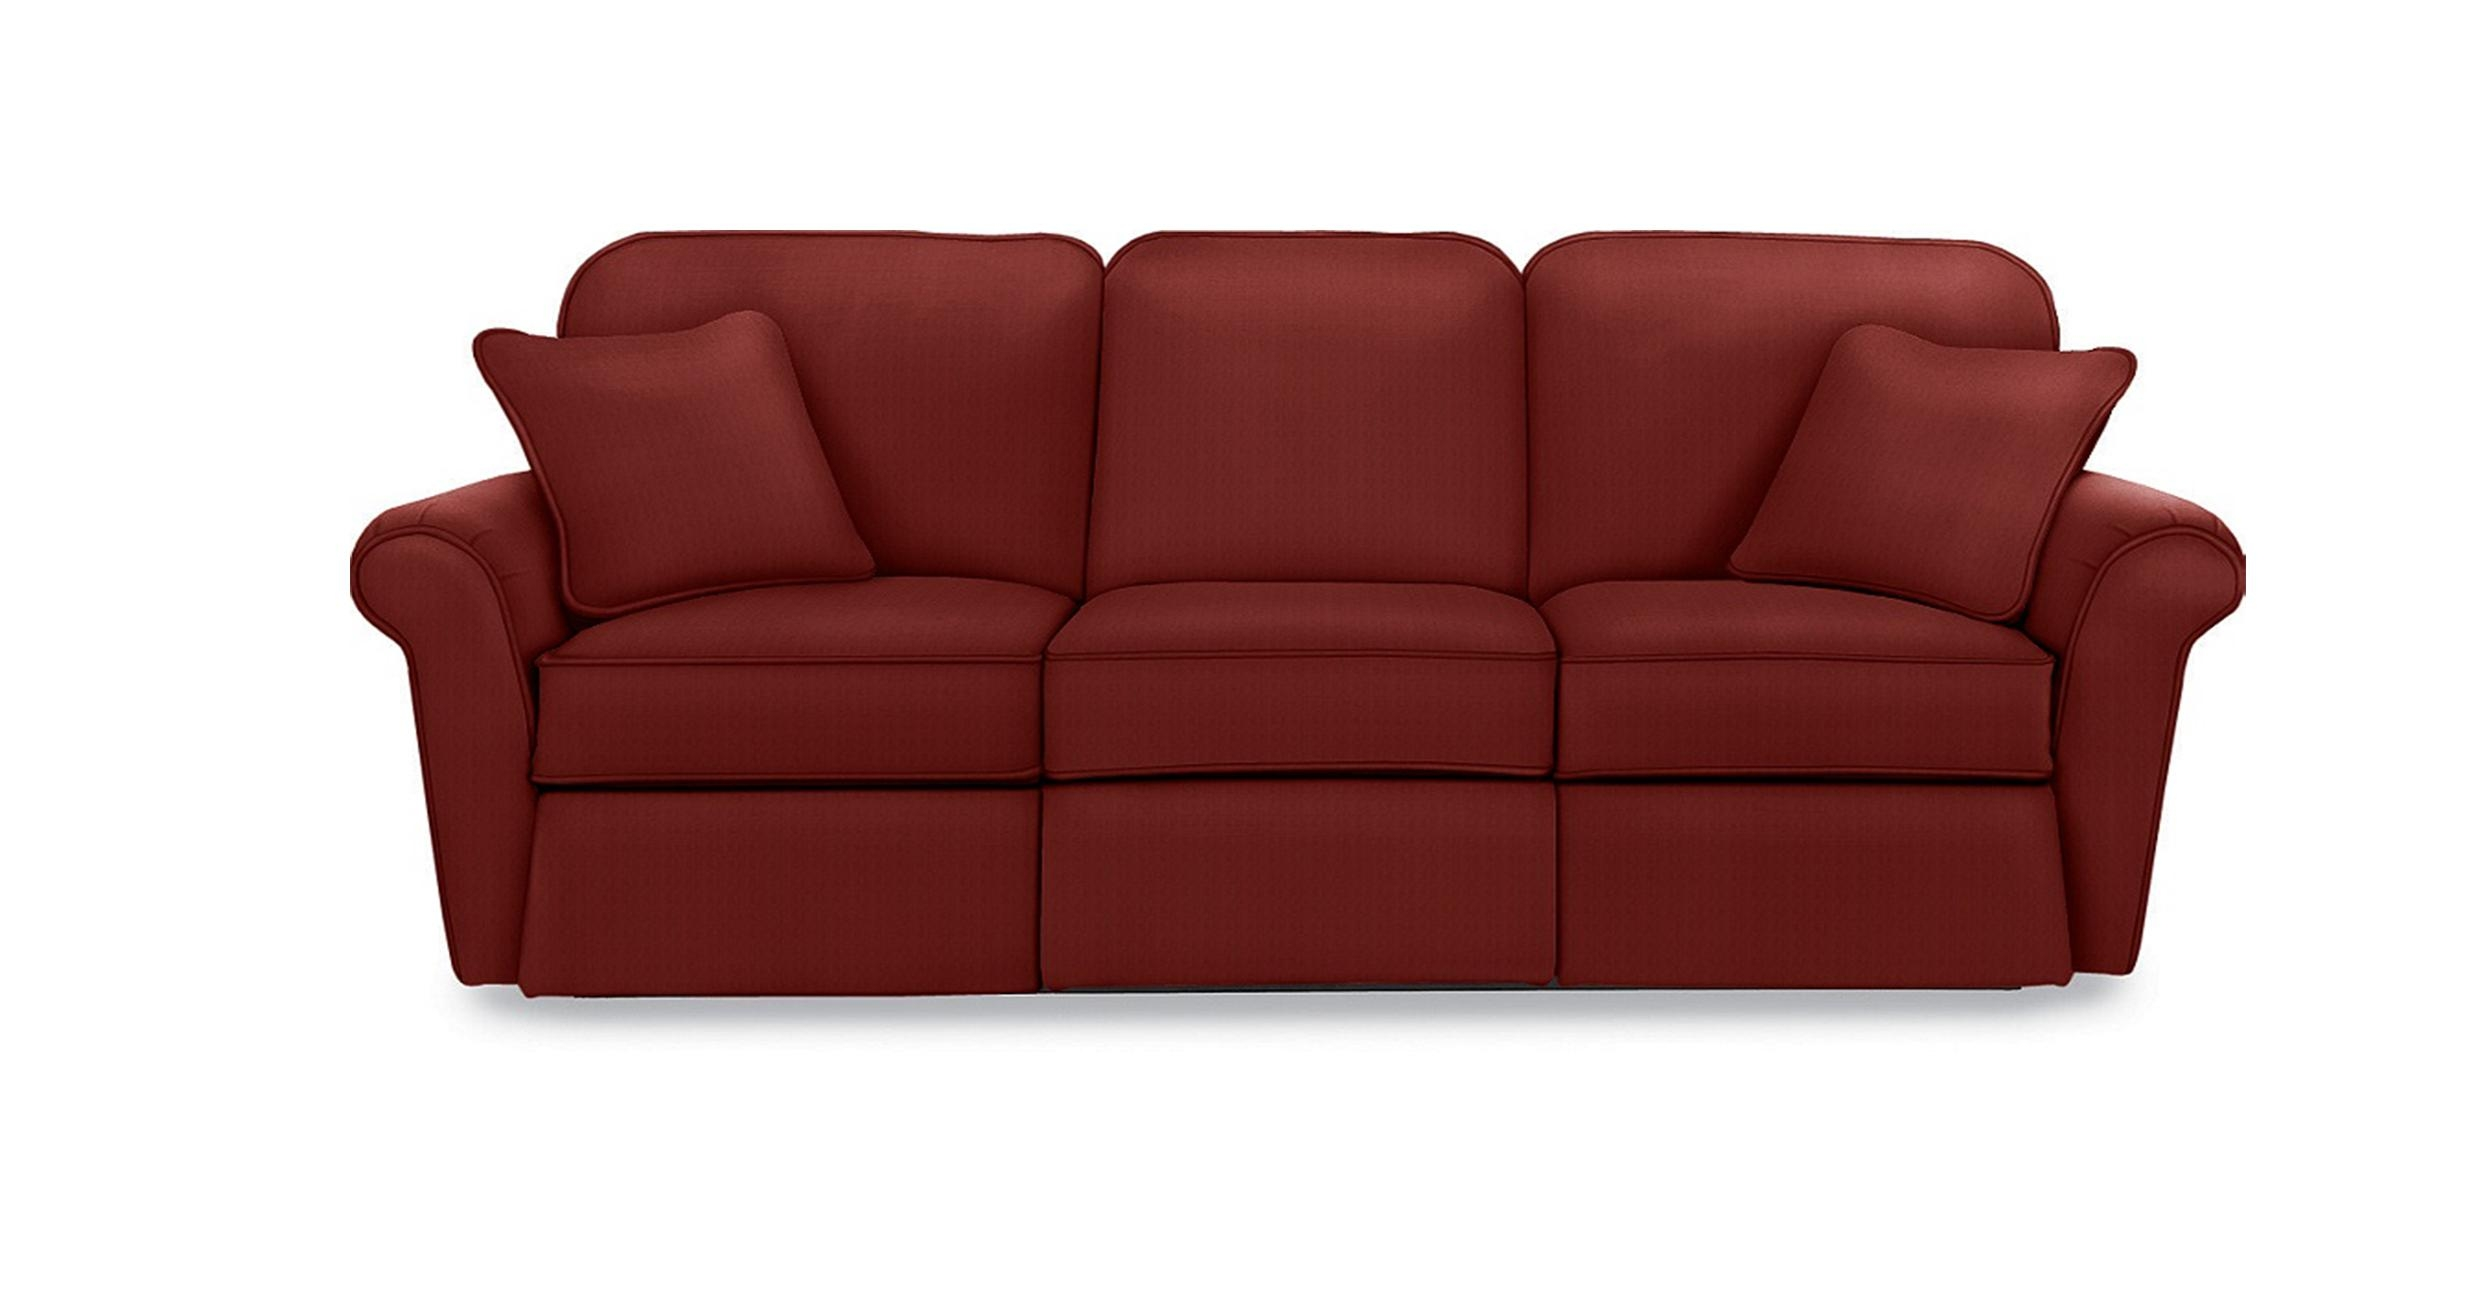 Lazy Boy Sofas And Loveseats – Cornett's Furniture And Bedding Within Lazy Boy Sofas And Chairs (View 11 of 20)